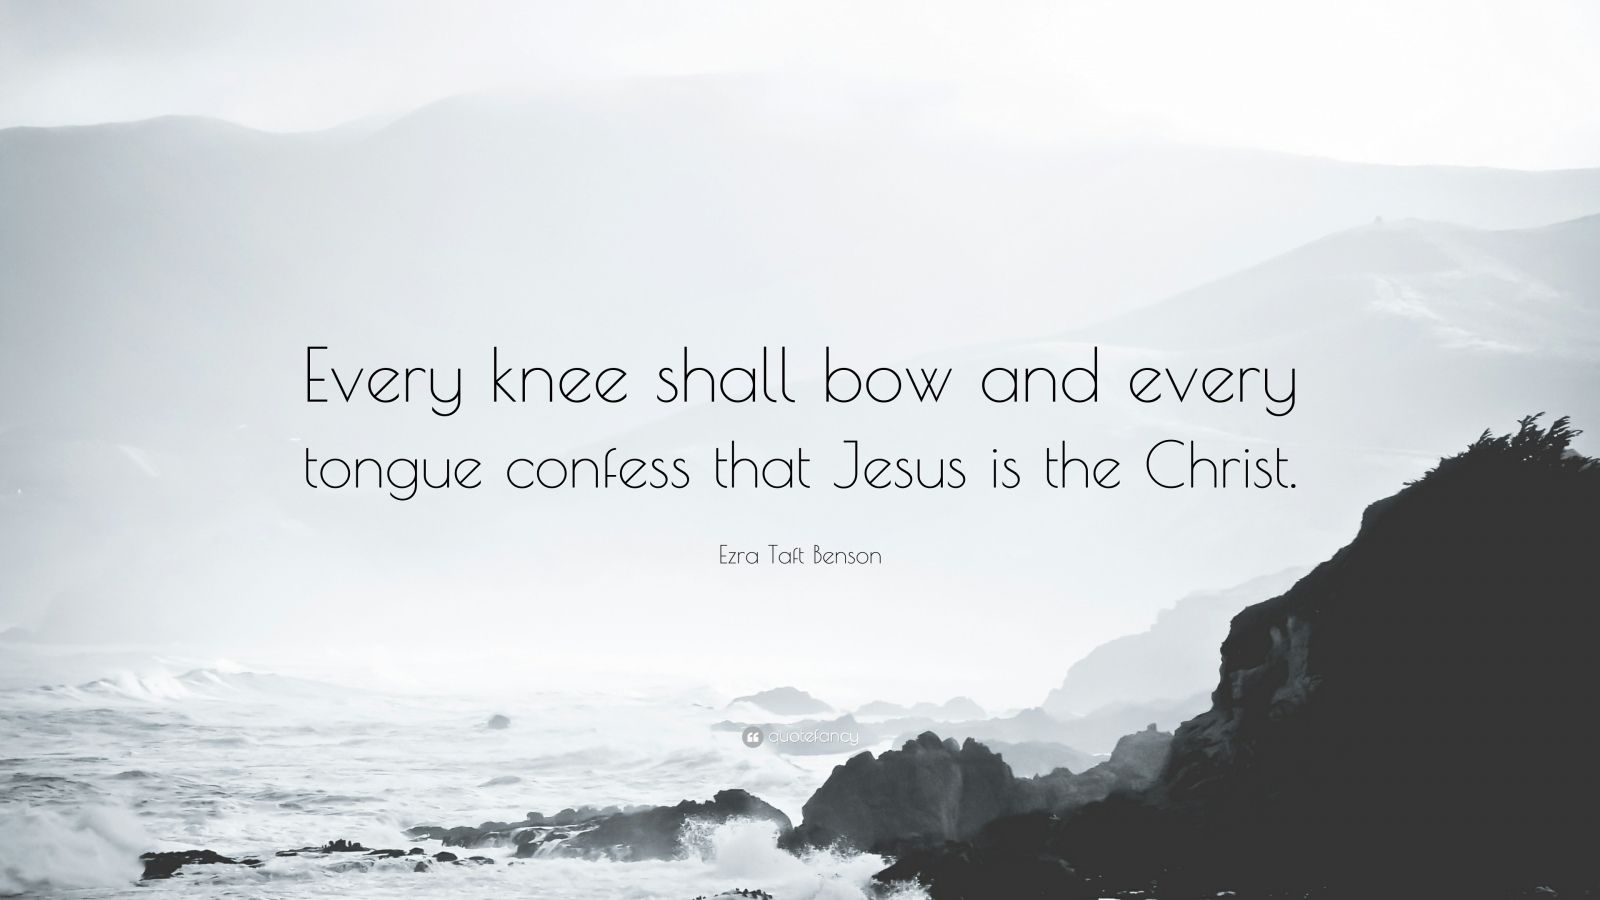 """Ezra Taft Benson Quote: """"Every knee shall bow and every tongue confess that Jesus is the Christ."""""""